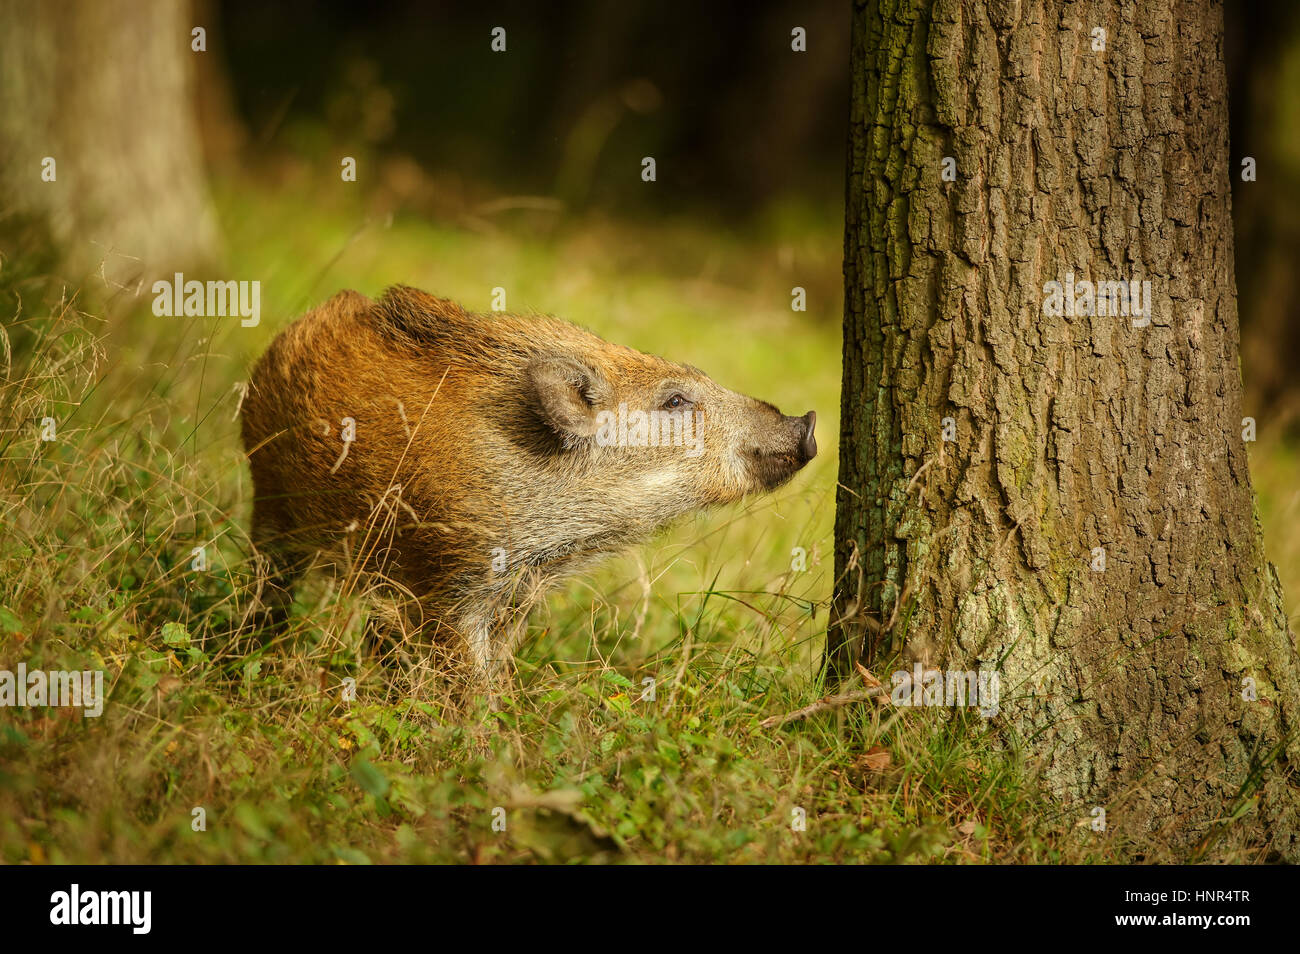 Wild Boar Baby Sniffing To The Tree Trunk While Standing In Grass Colorful Forest